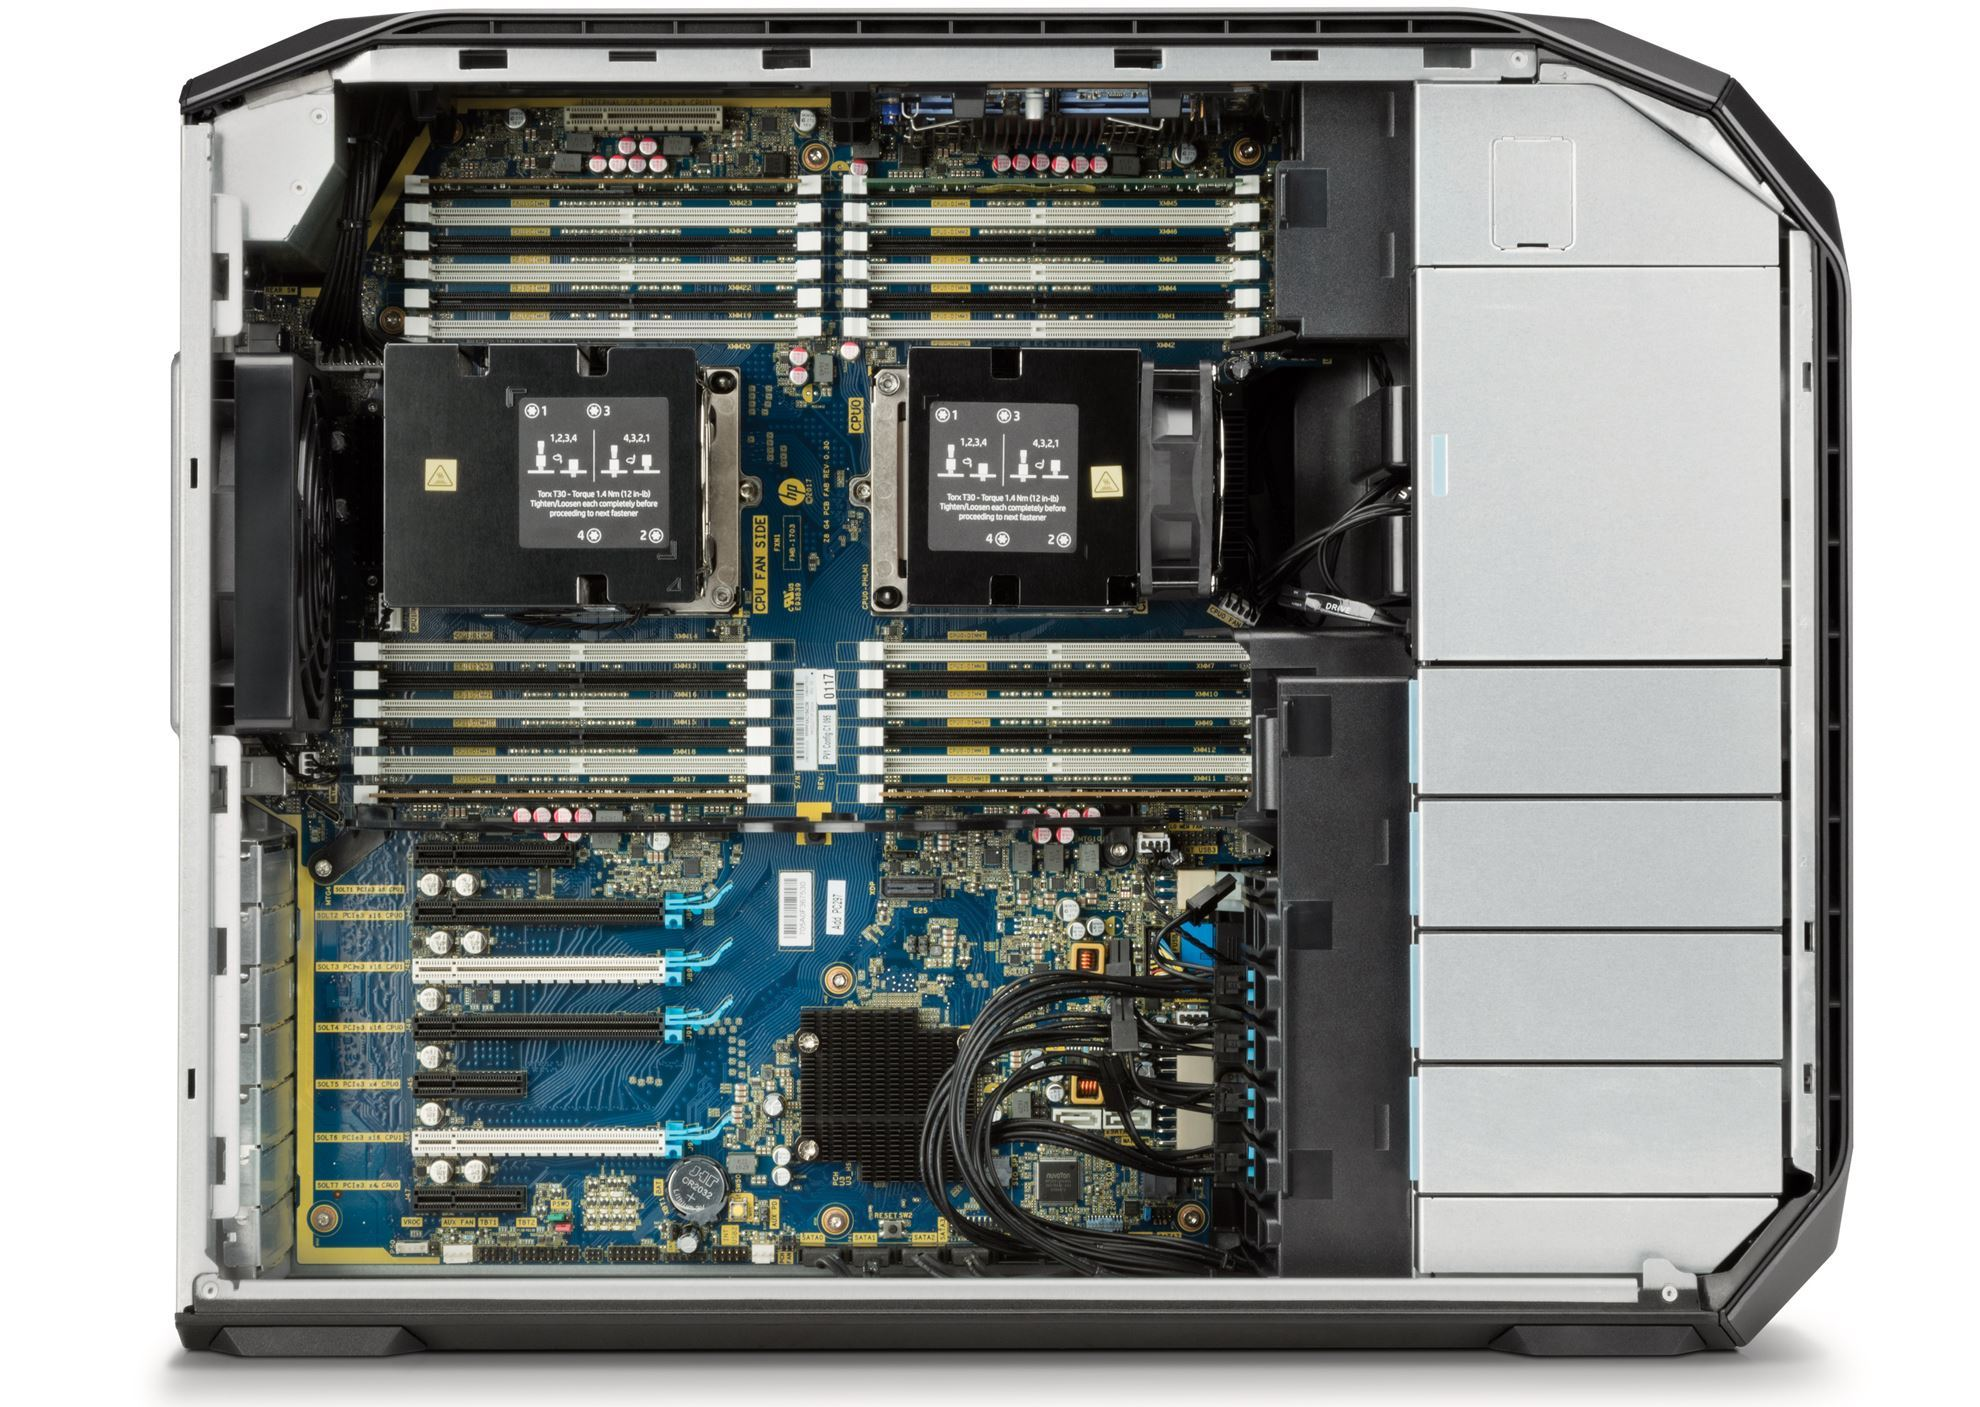 Picture of HP Z8 G4 Workstation Gold 6244